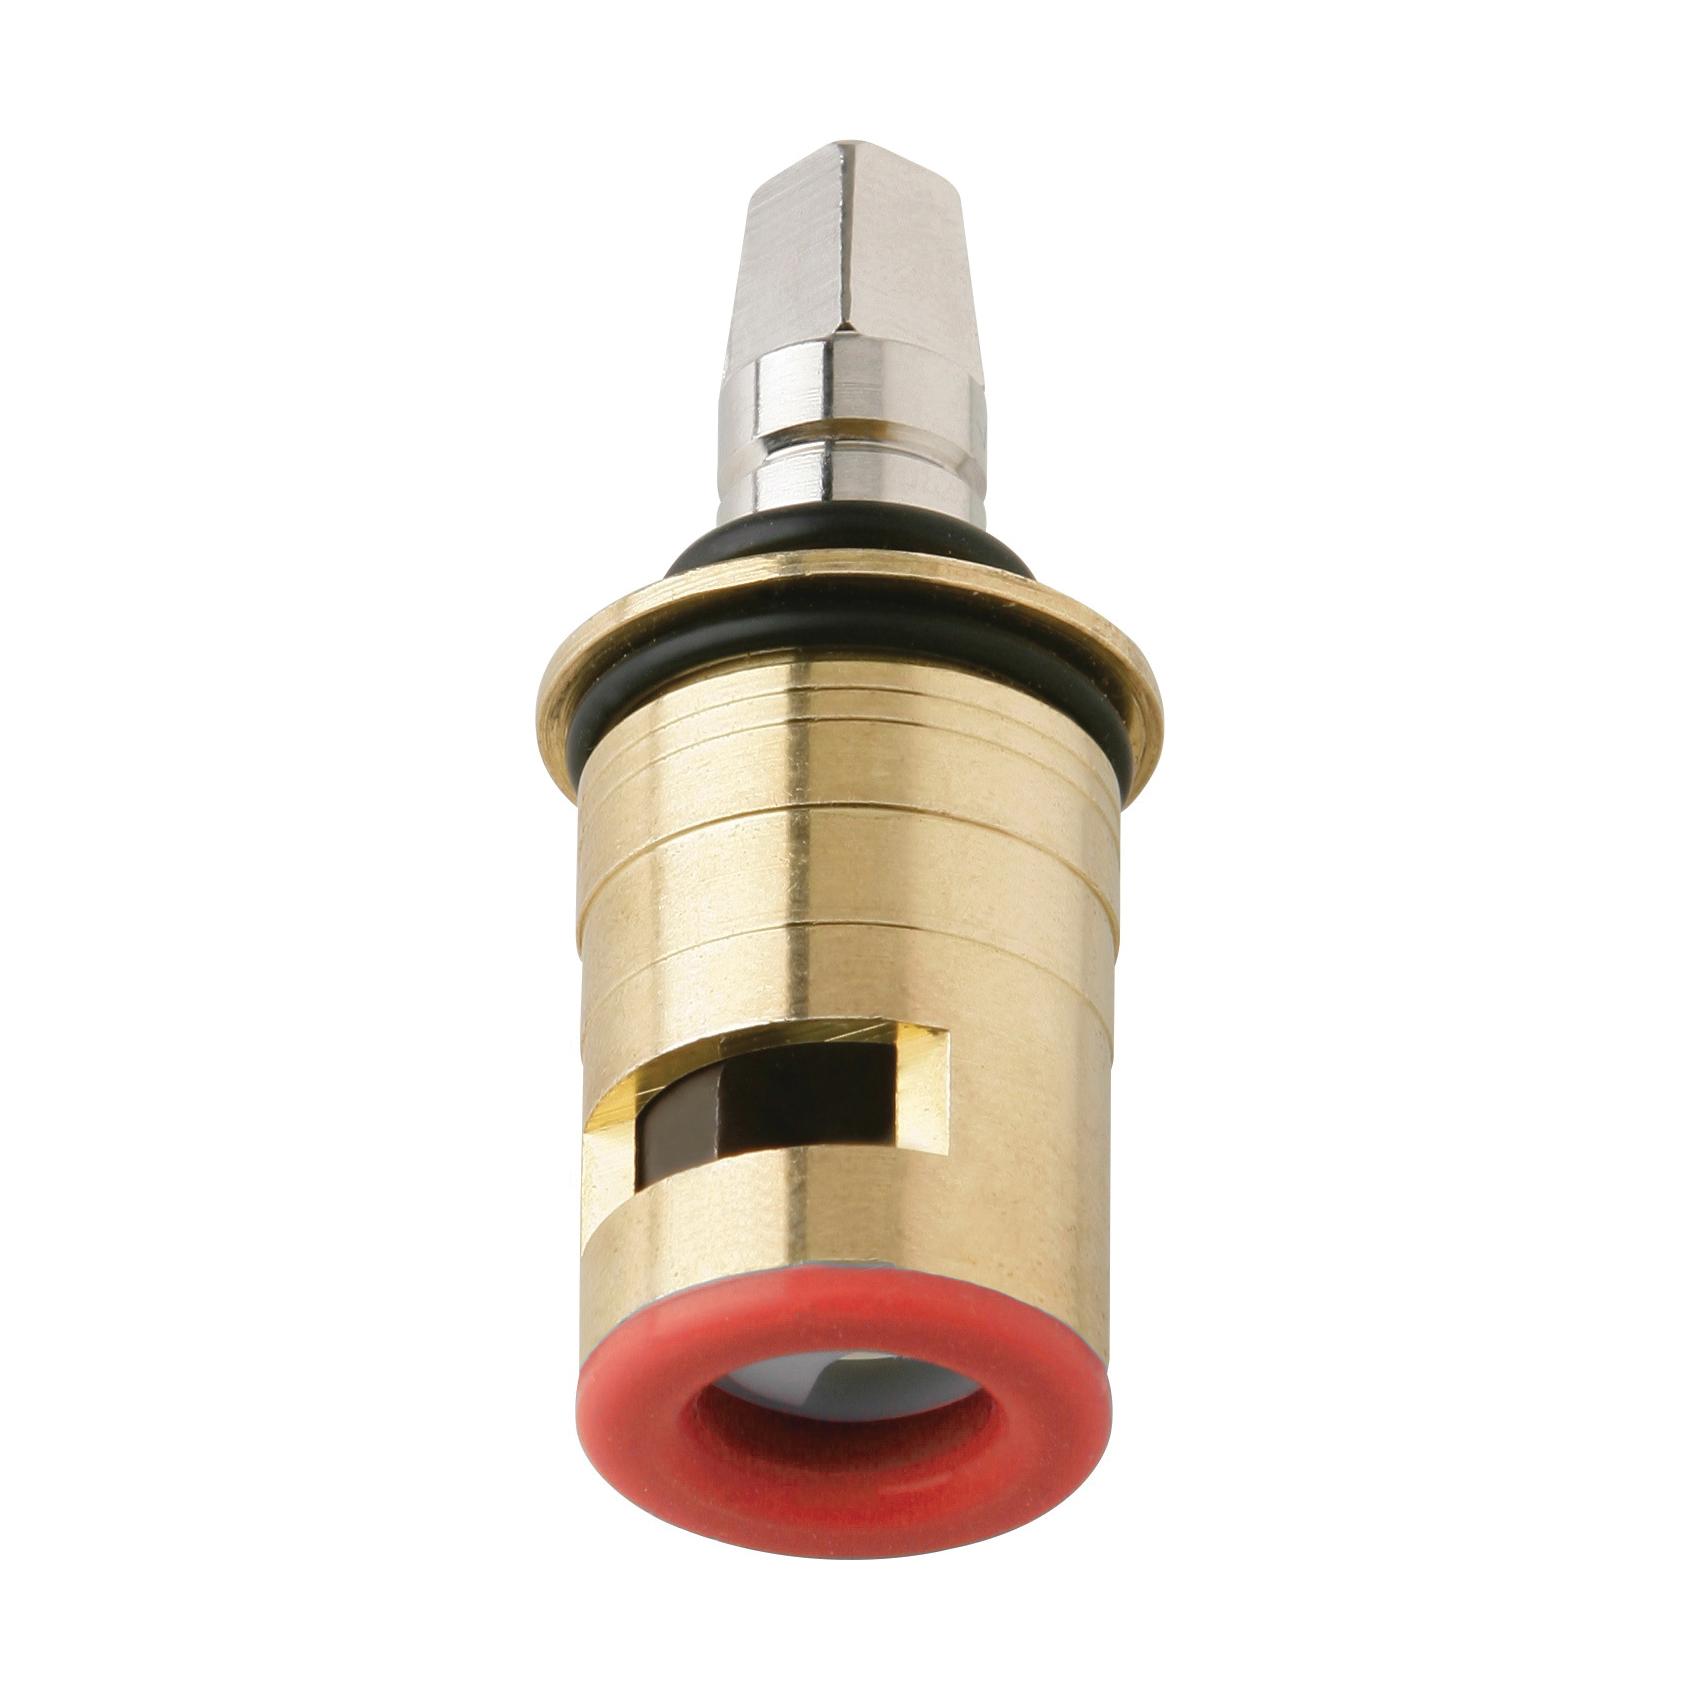 Chicago Faucet® 1-100XKBL12JKABNF Quaturn Operating Cartridge, For Use With Manual Faucet, Ceramic/Brass/Stainless Steel Filter, Domestic